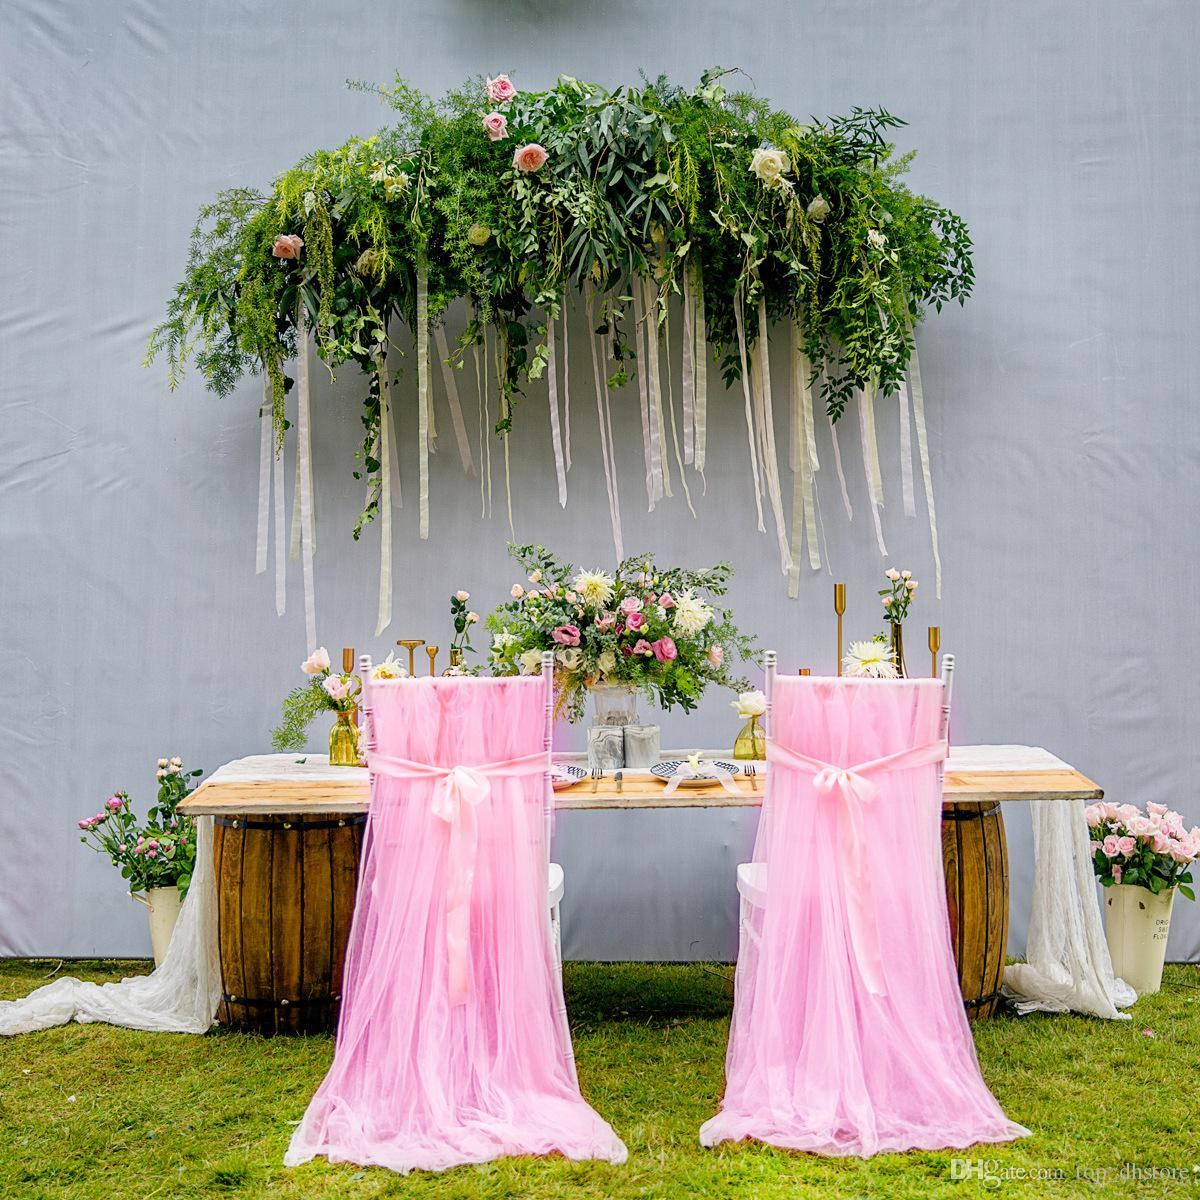 chair covers pink narrow high white wedding chiffon cover 2 6 1 6m seat with sashes supplies wcs01 banquet rental